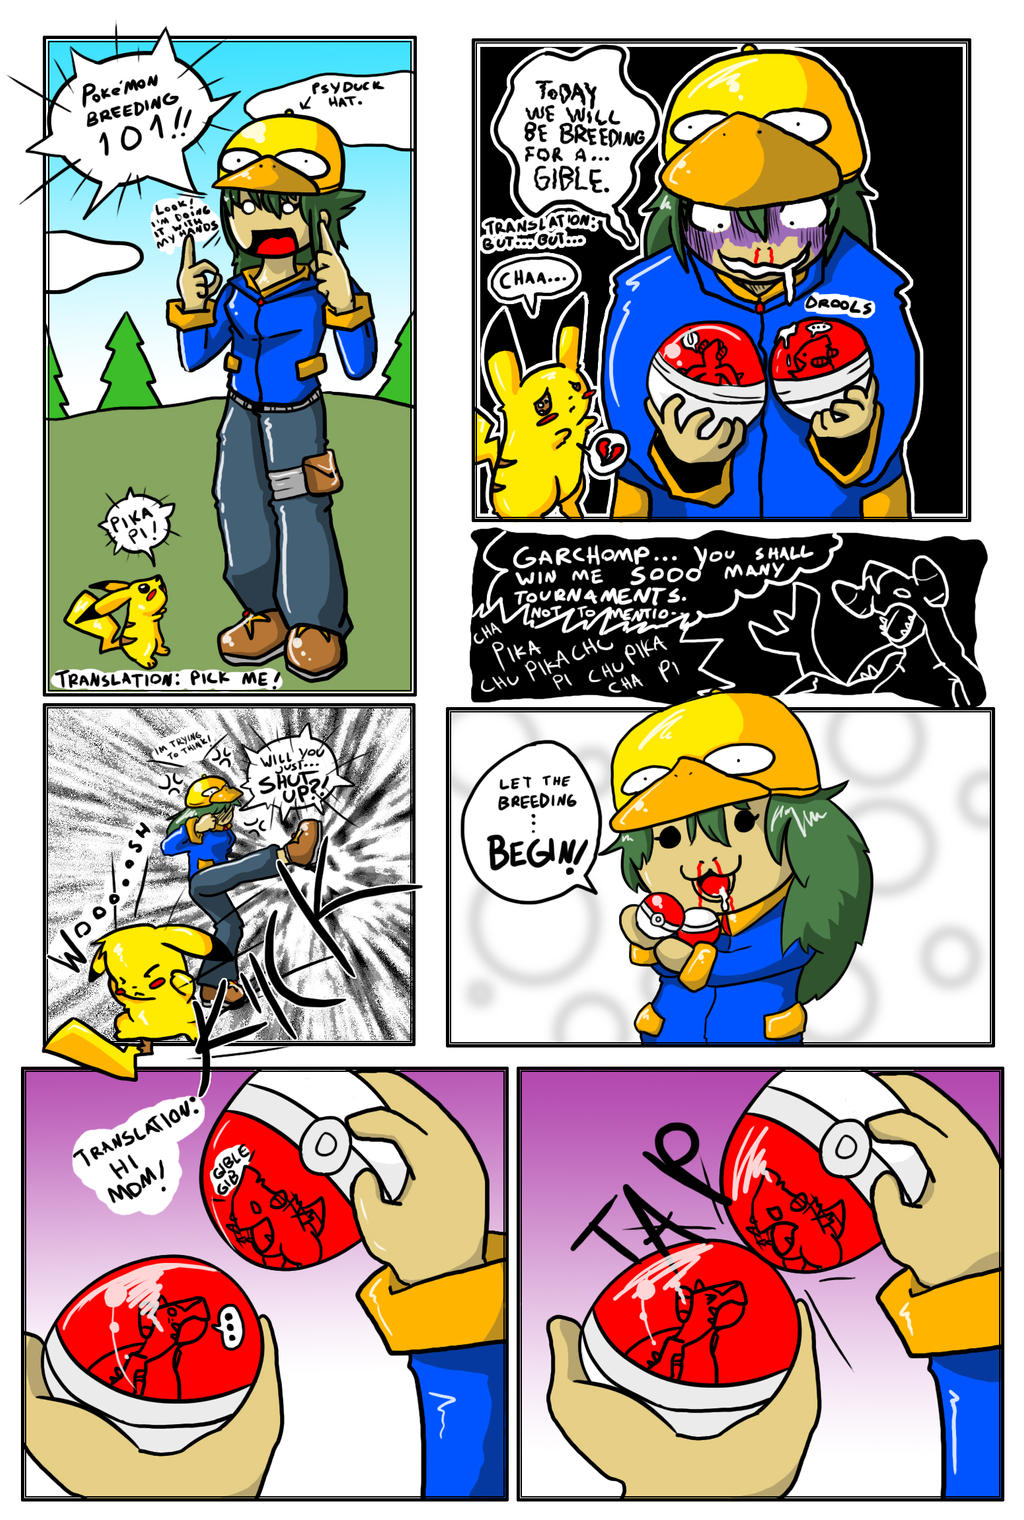 Pokemon Breeding by blayzeon on DeviantArt